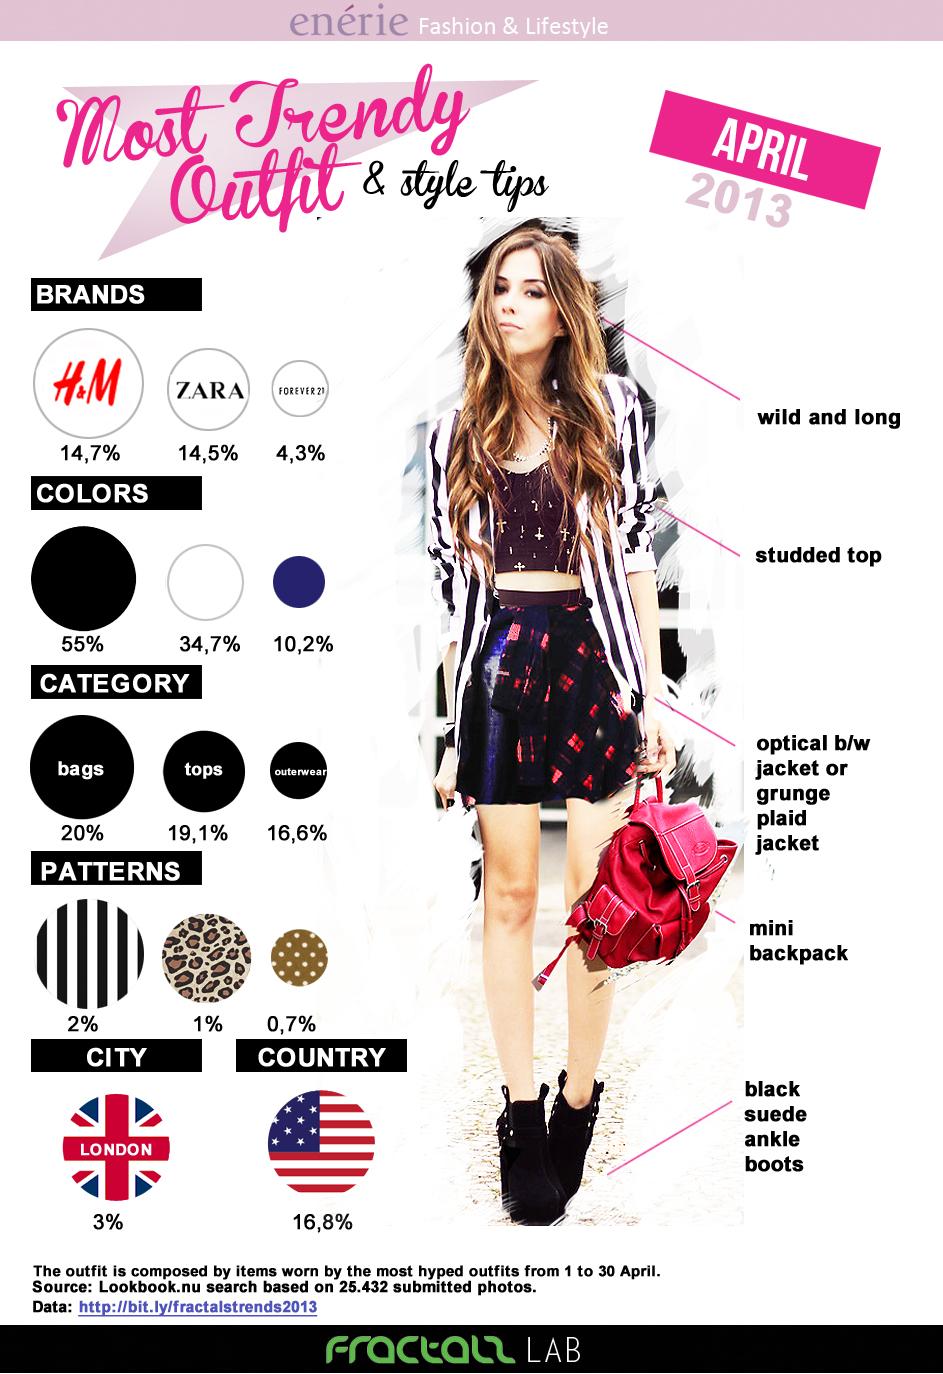 Most Trendy Outfit And Style Tips Infographic Infographic List